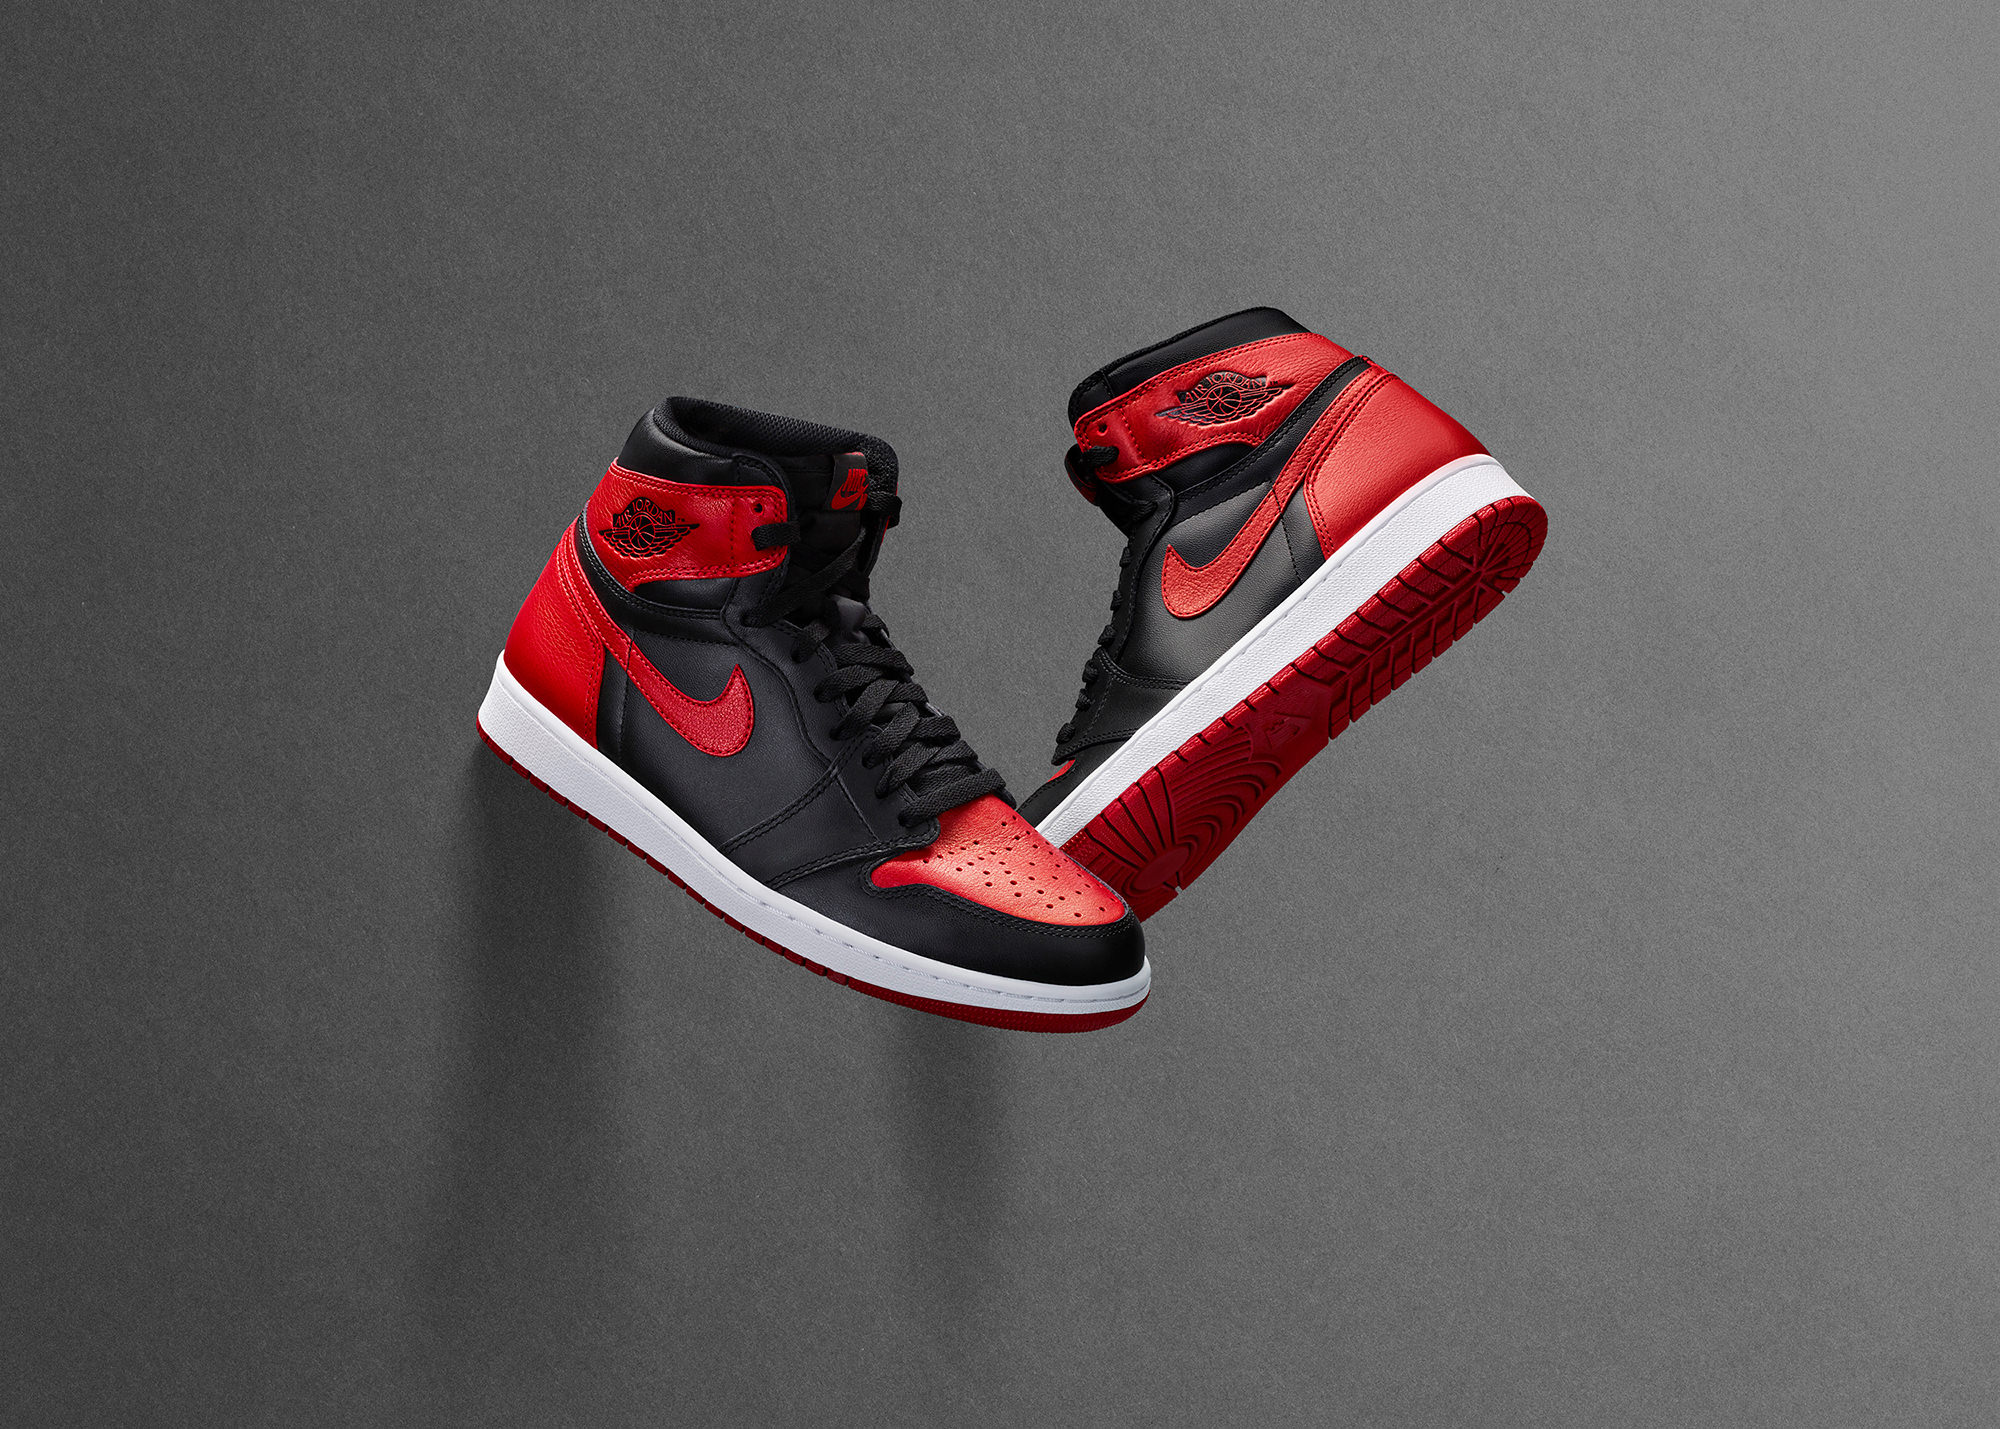 57c3b0c8925c208f491ca251_Air_Jordan_I_Pair_original